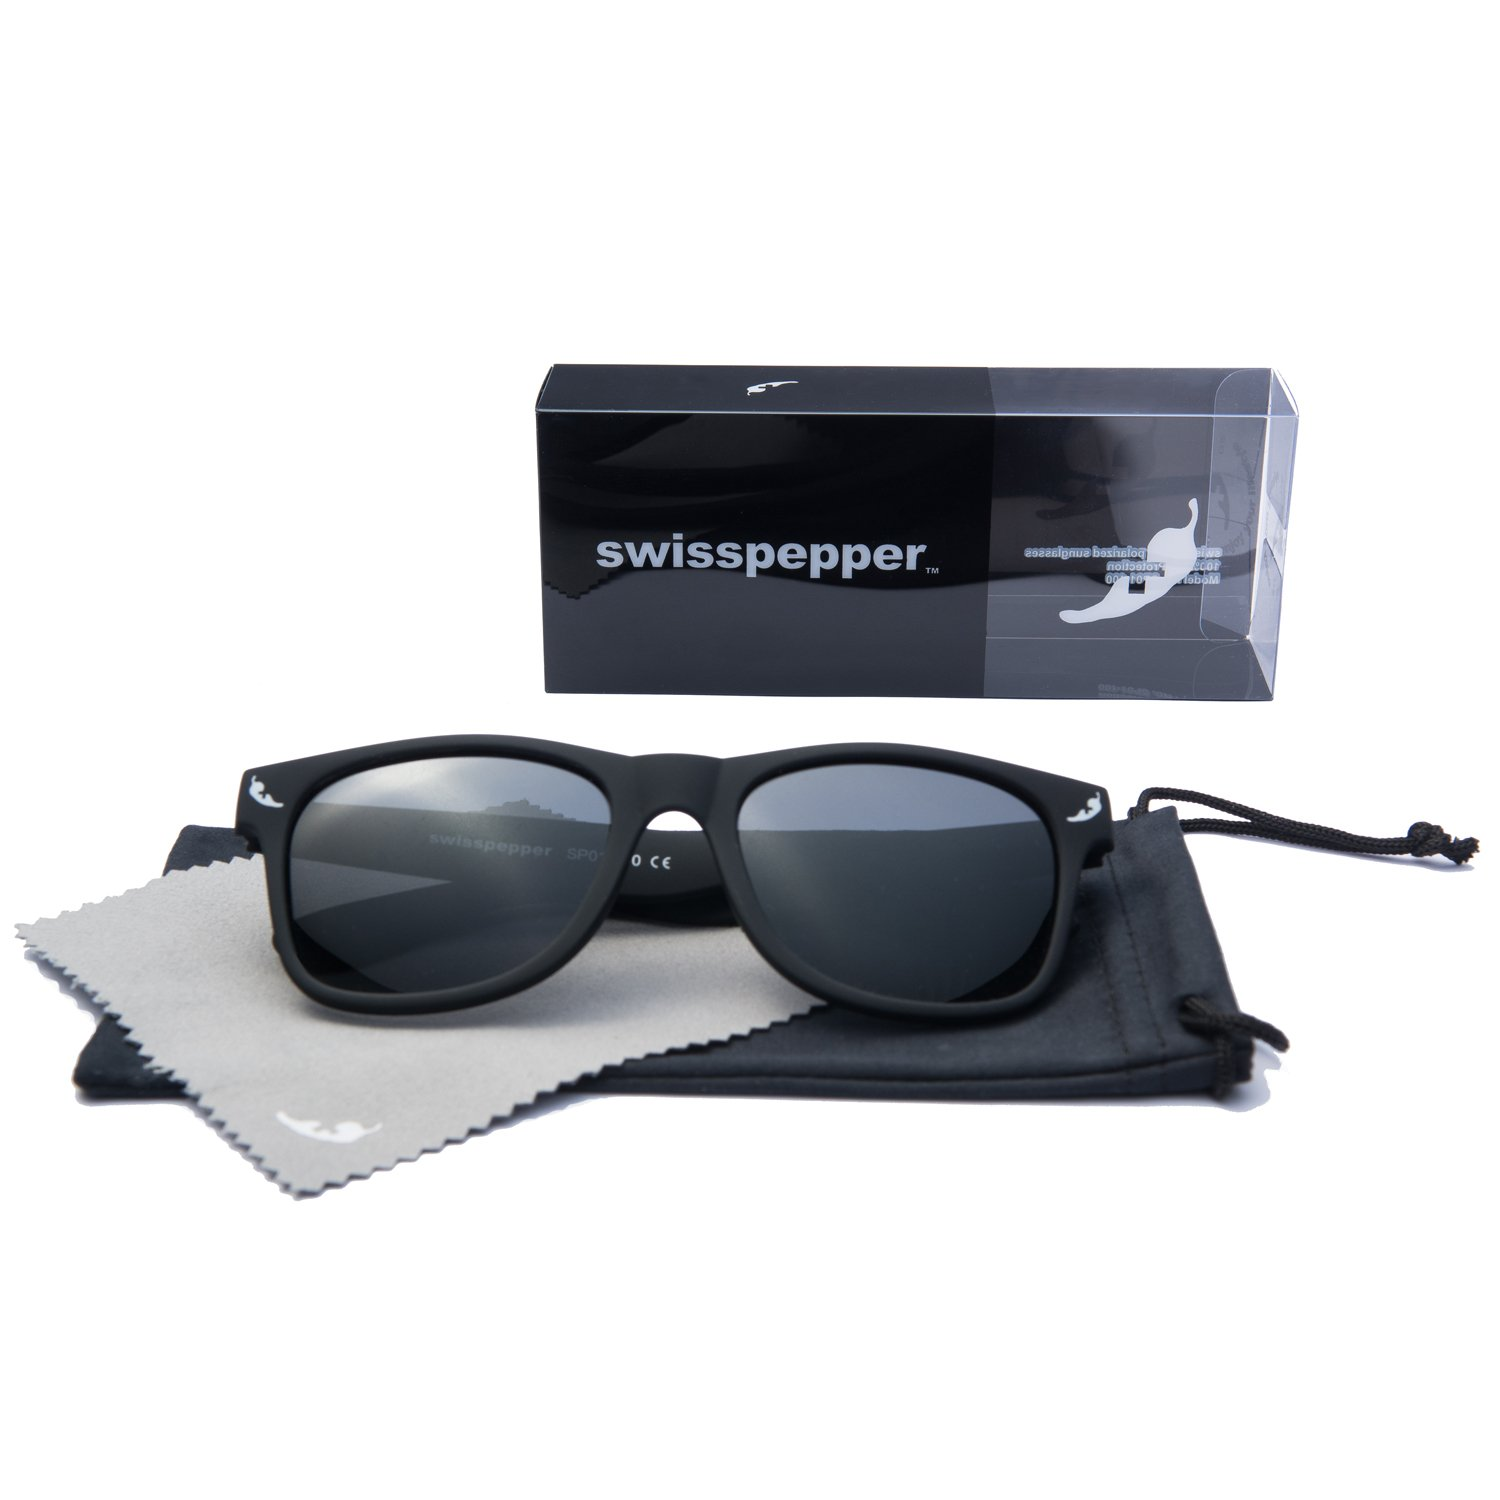 859c9117d8 swisspepper Polarized Designer Fashion Sunglasses for Men Women ...